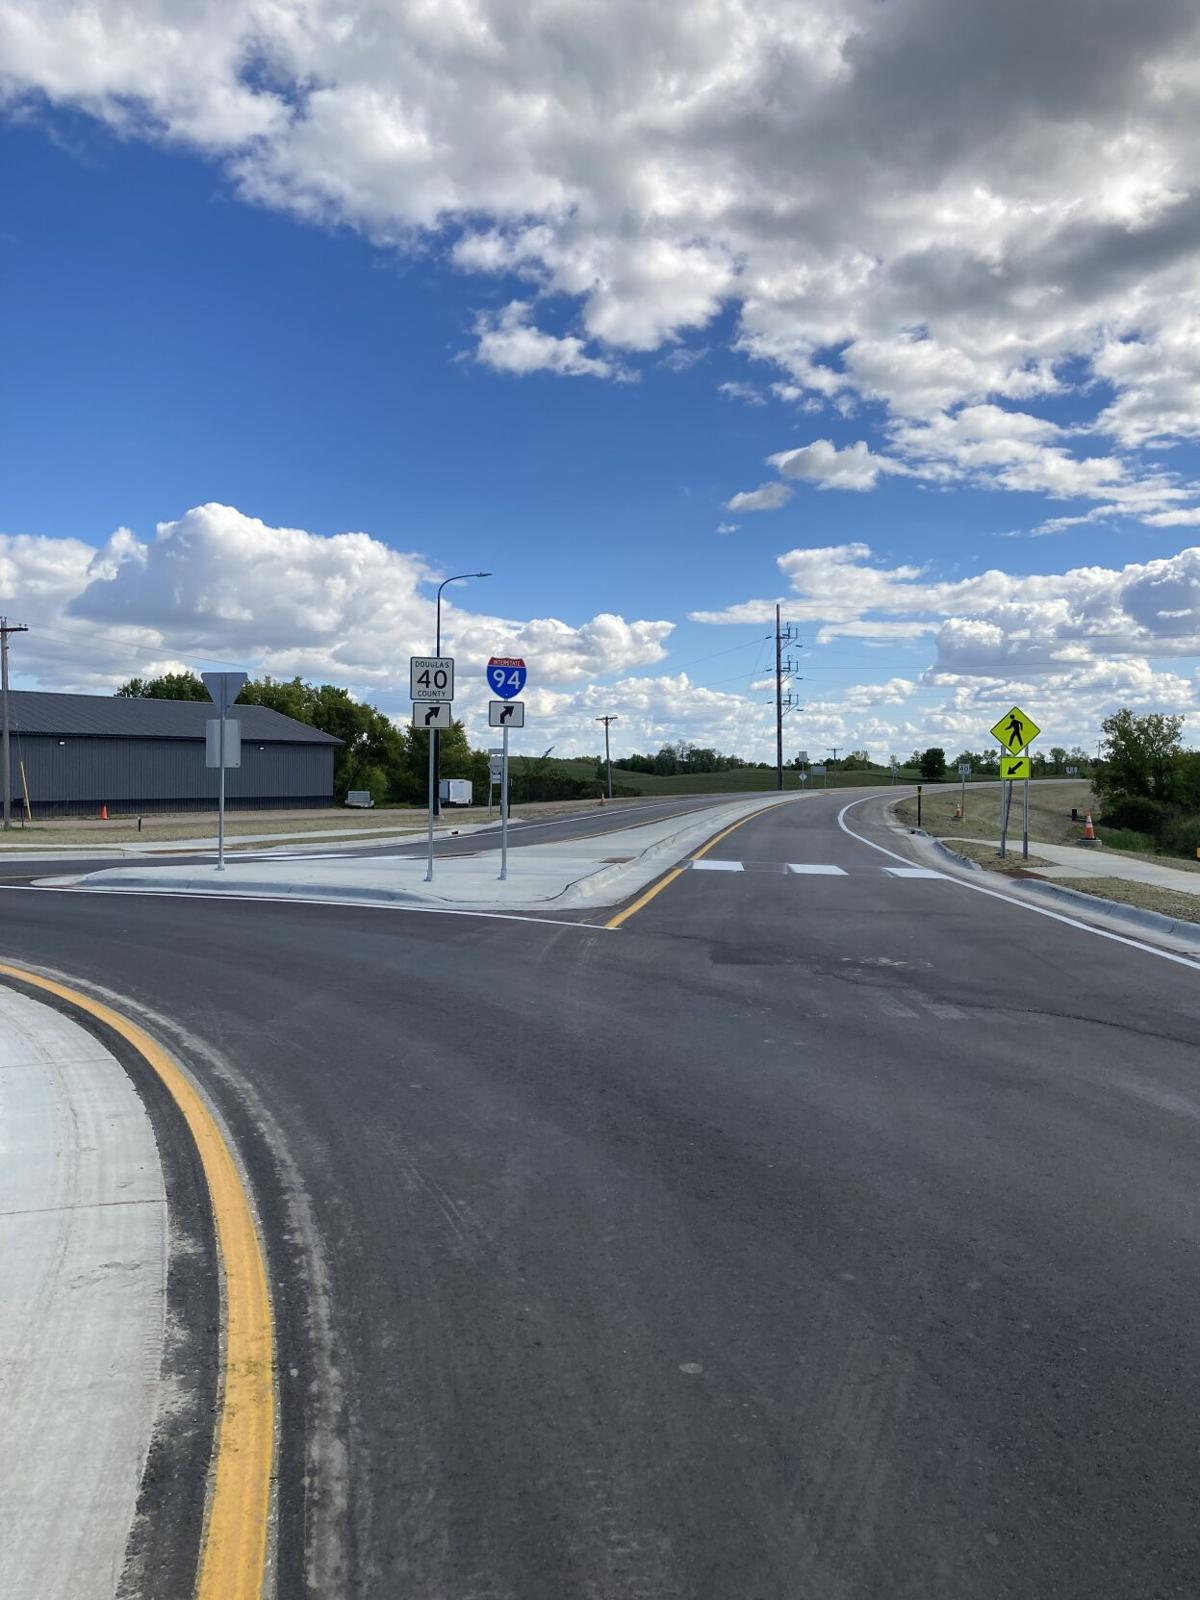 Roundabout complete at county road 40 and 8 intersection